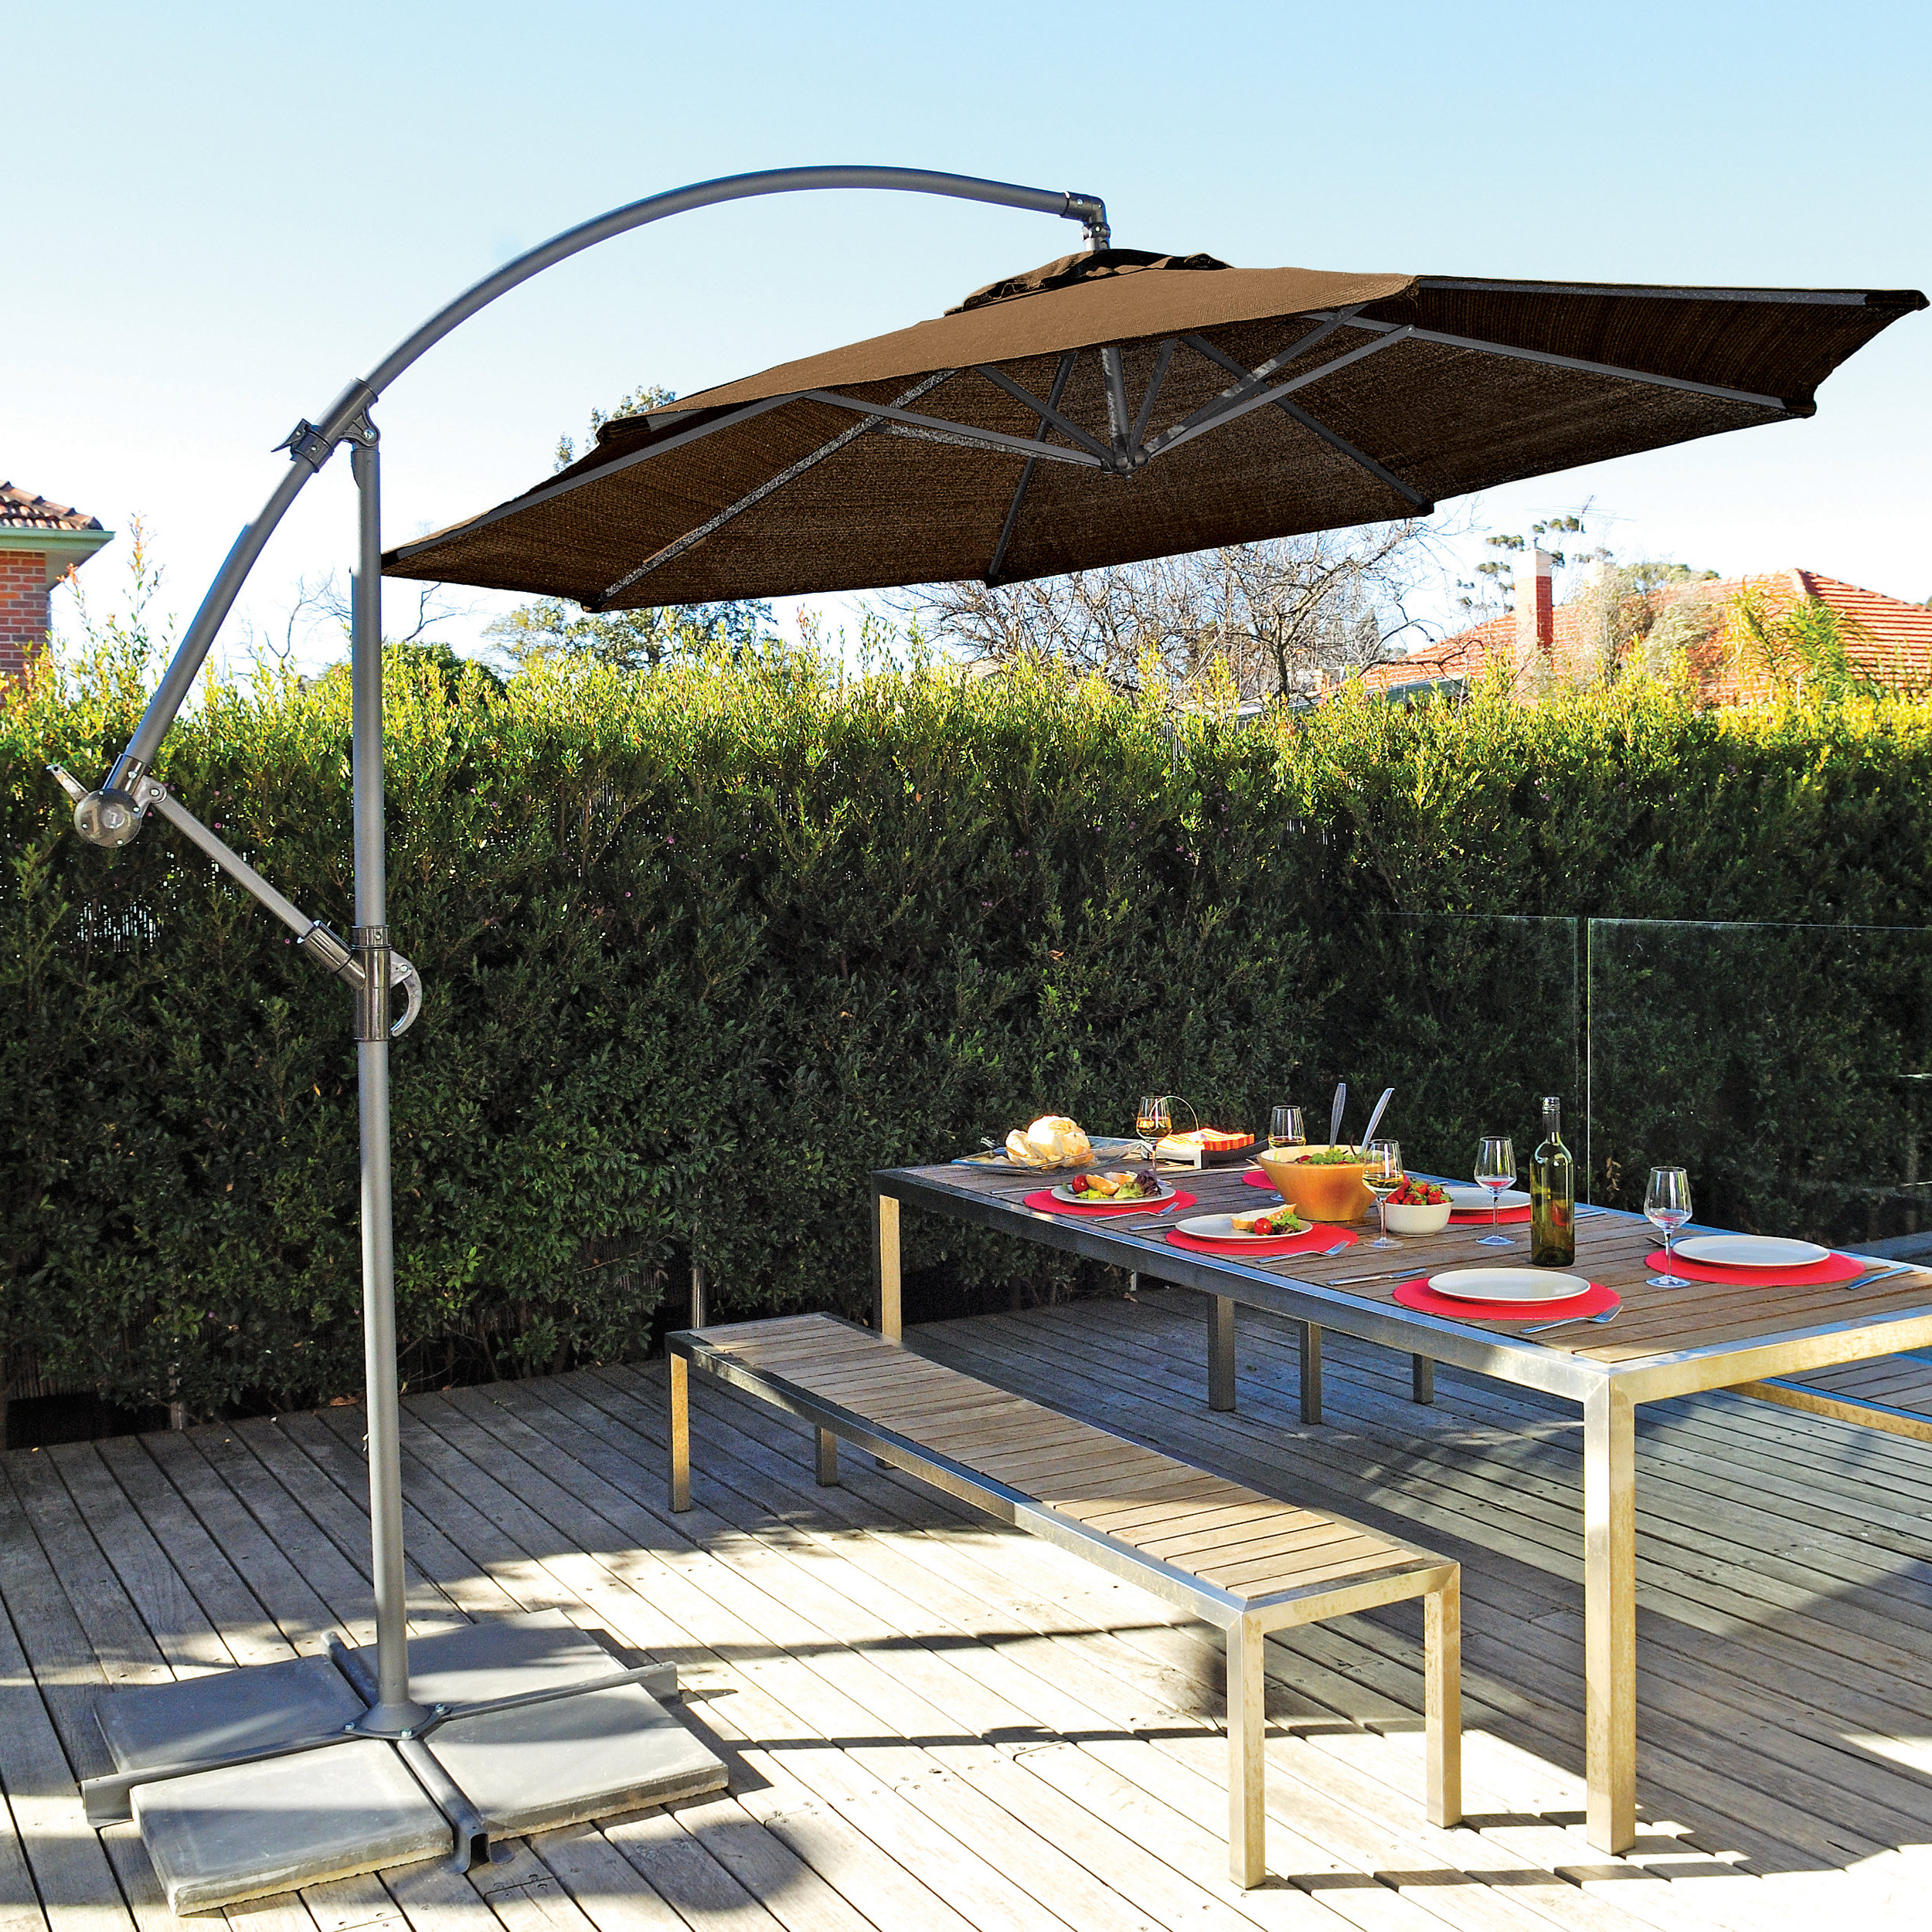 Coolaroo 10' Cantilever Umbrella With Regard To Famous Bostic Cantilever Umbrellas (View 2 of 20)